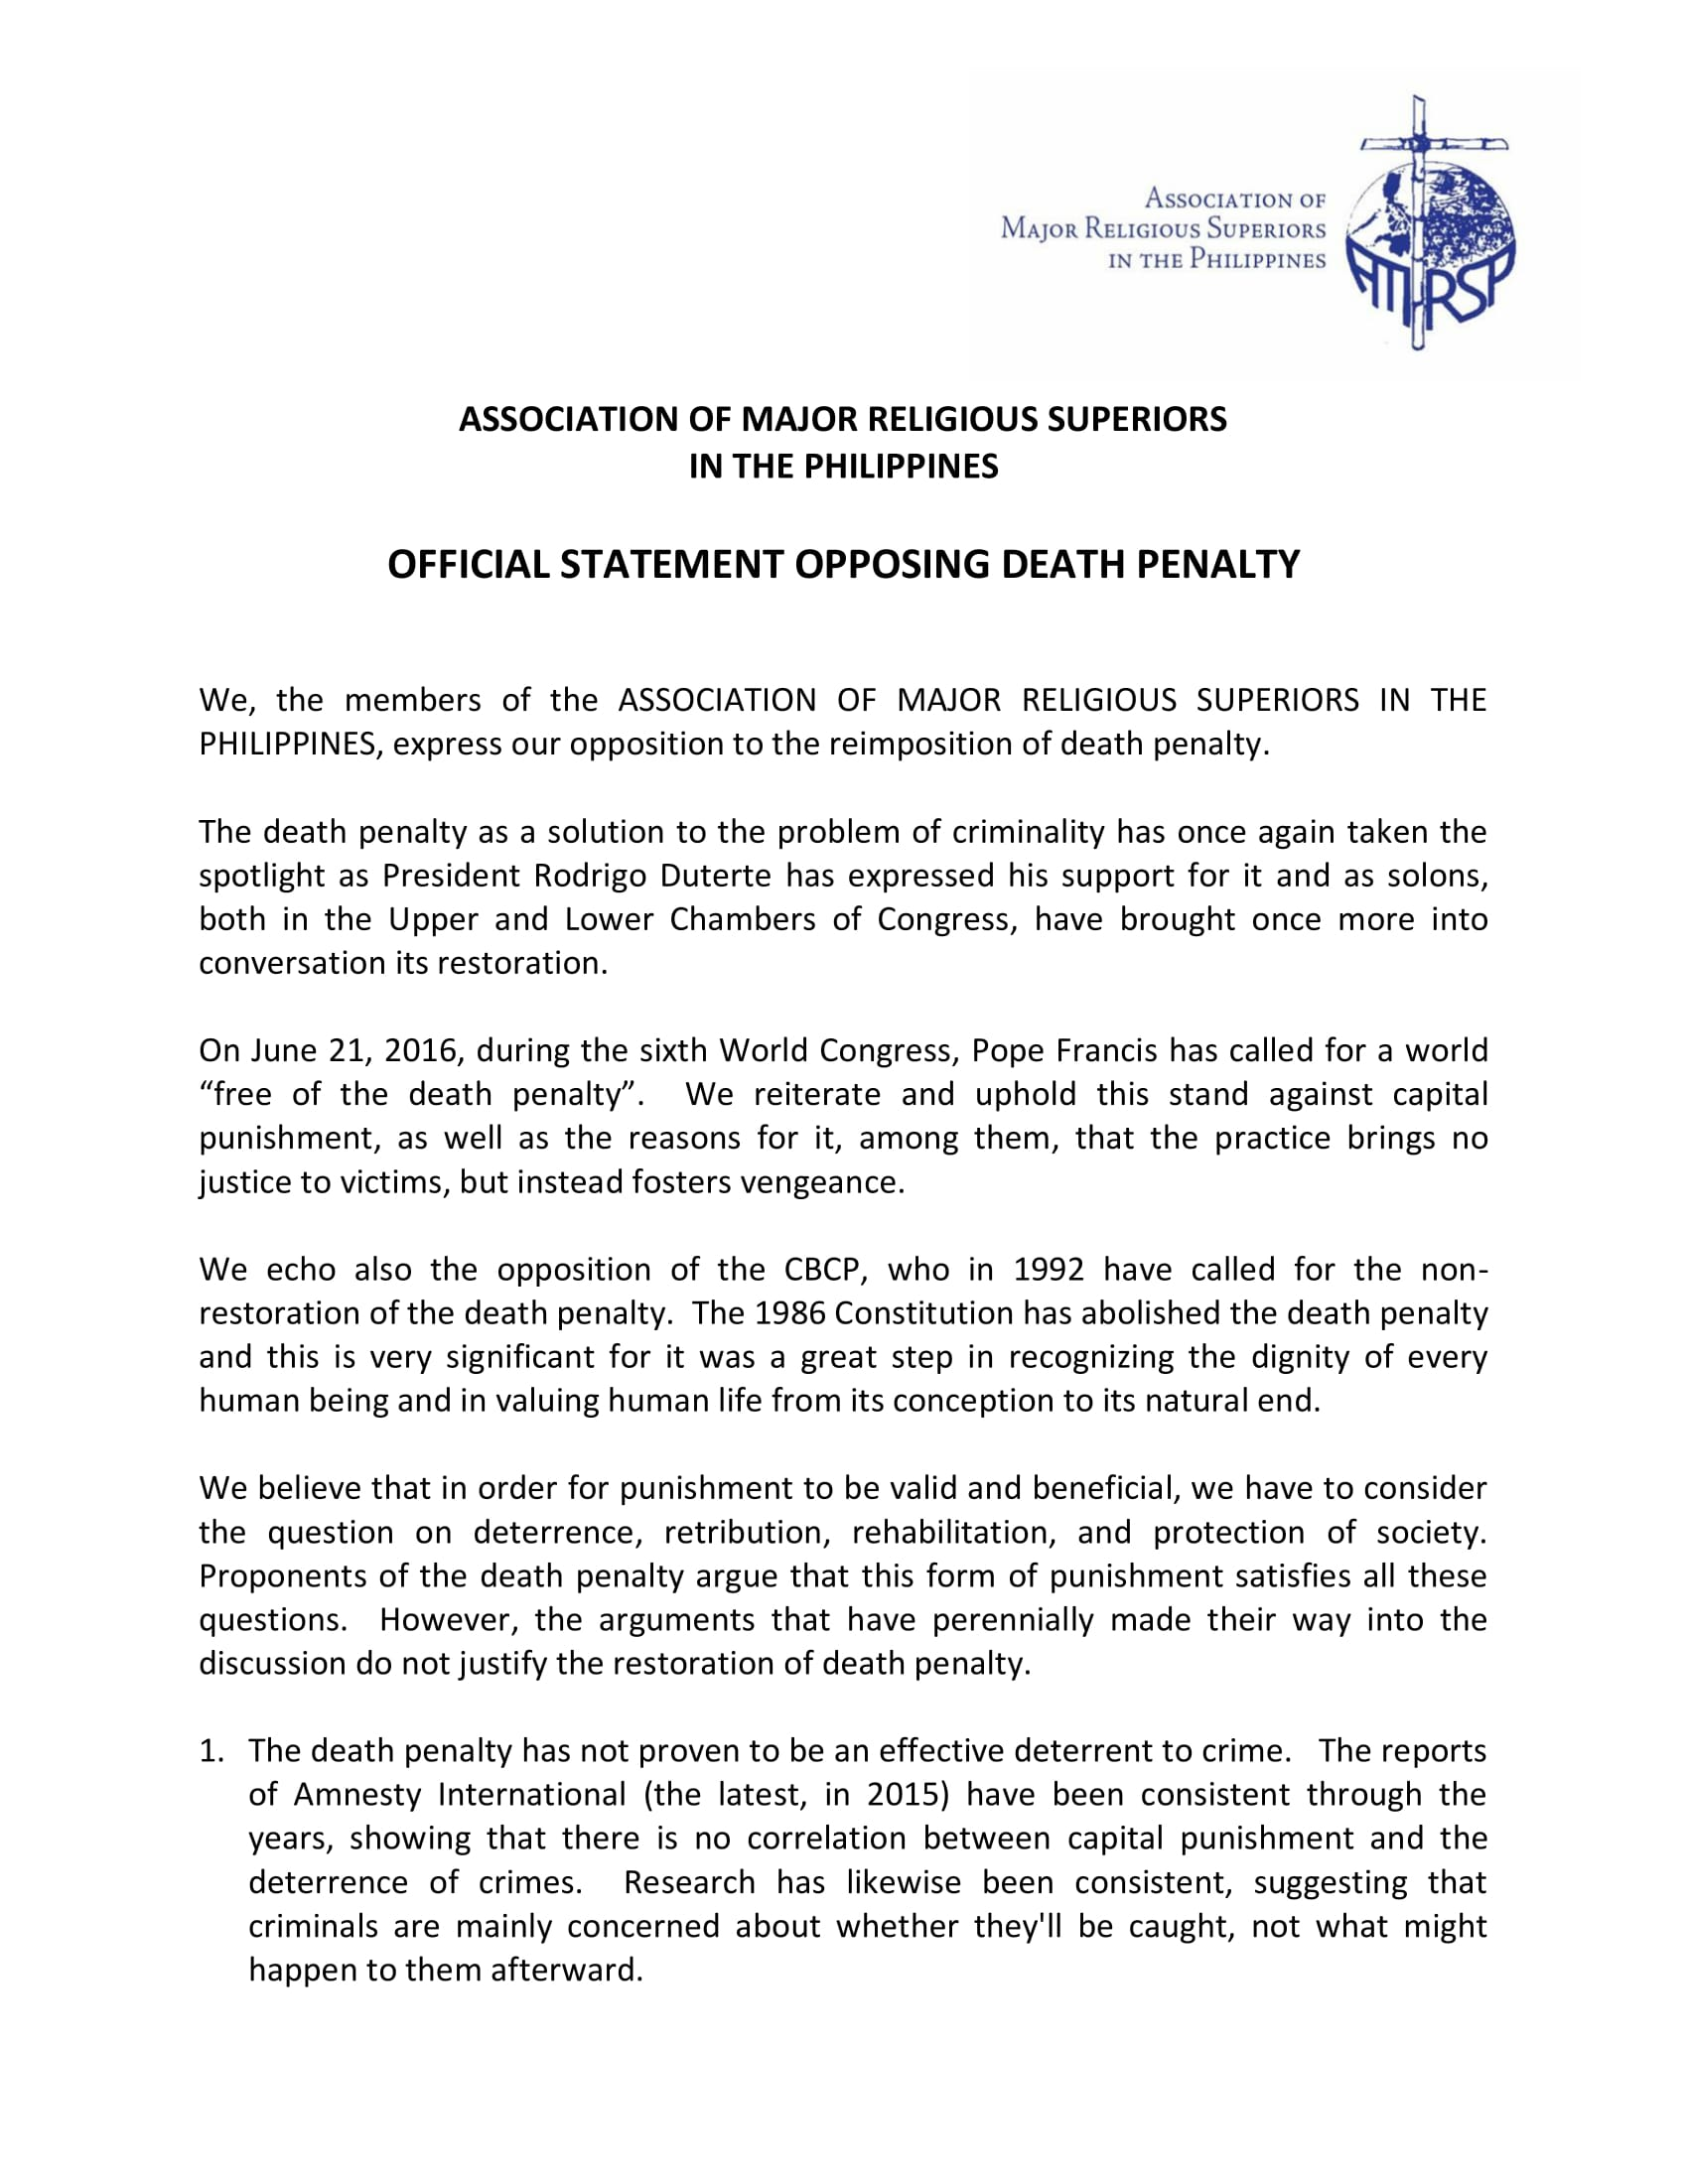 reimposition of death penalty in the philippines essay